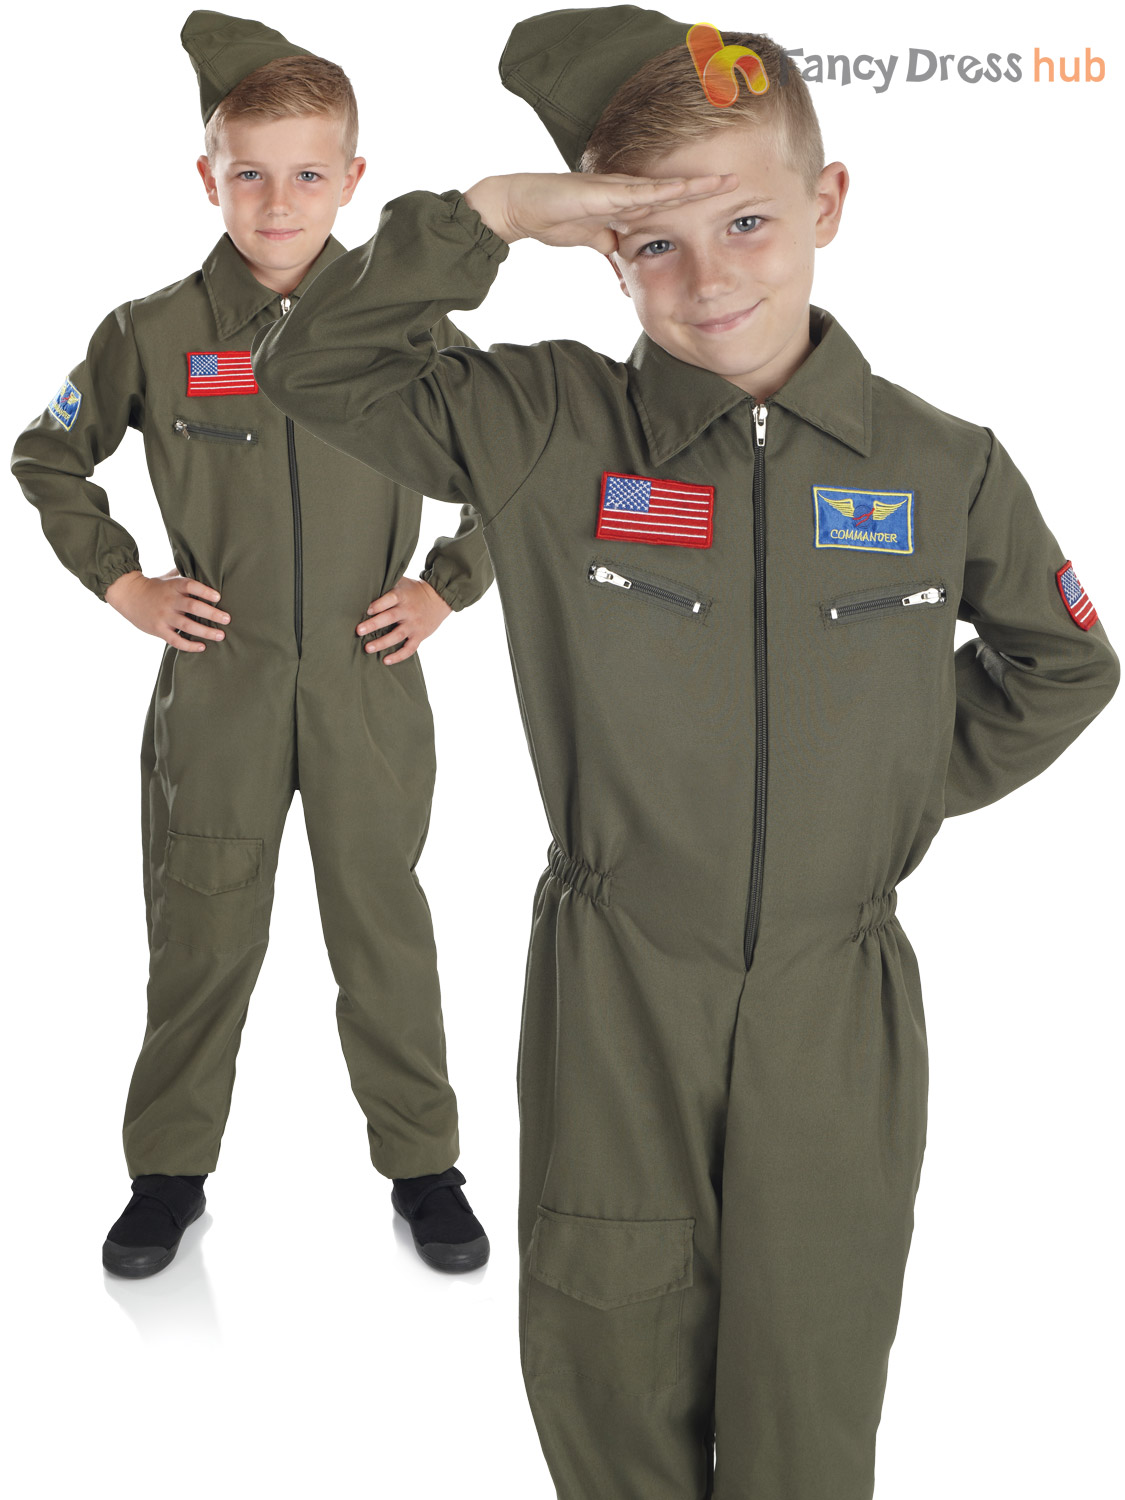 What grades are needed to be a RAF fighter pilot?